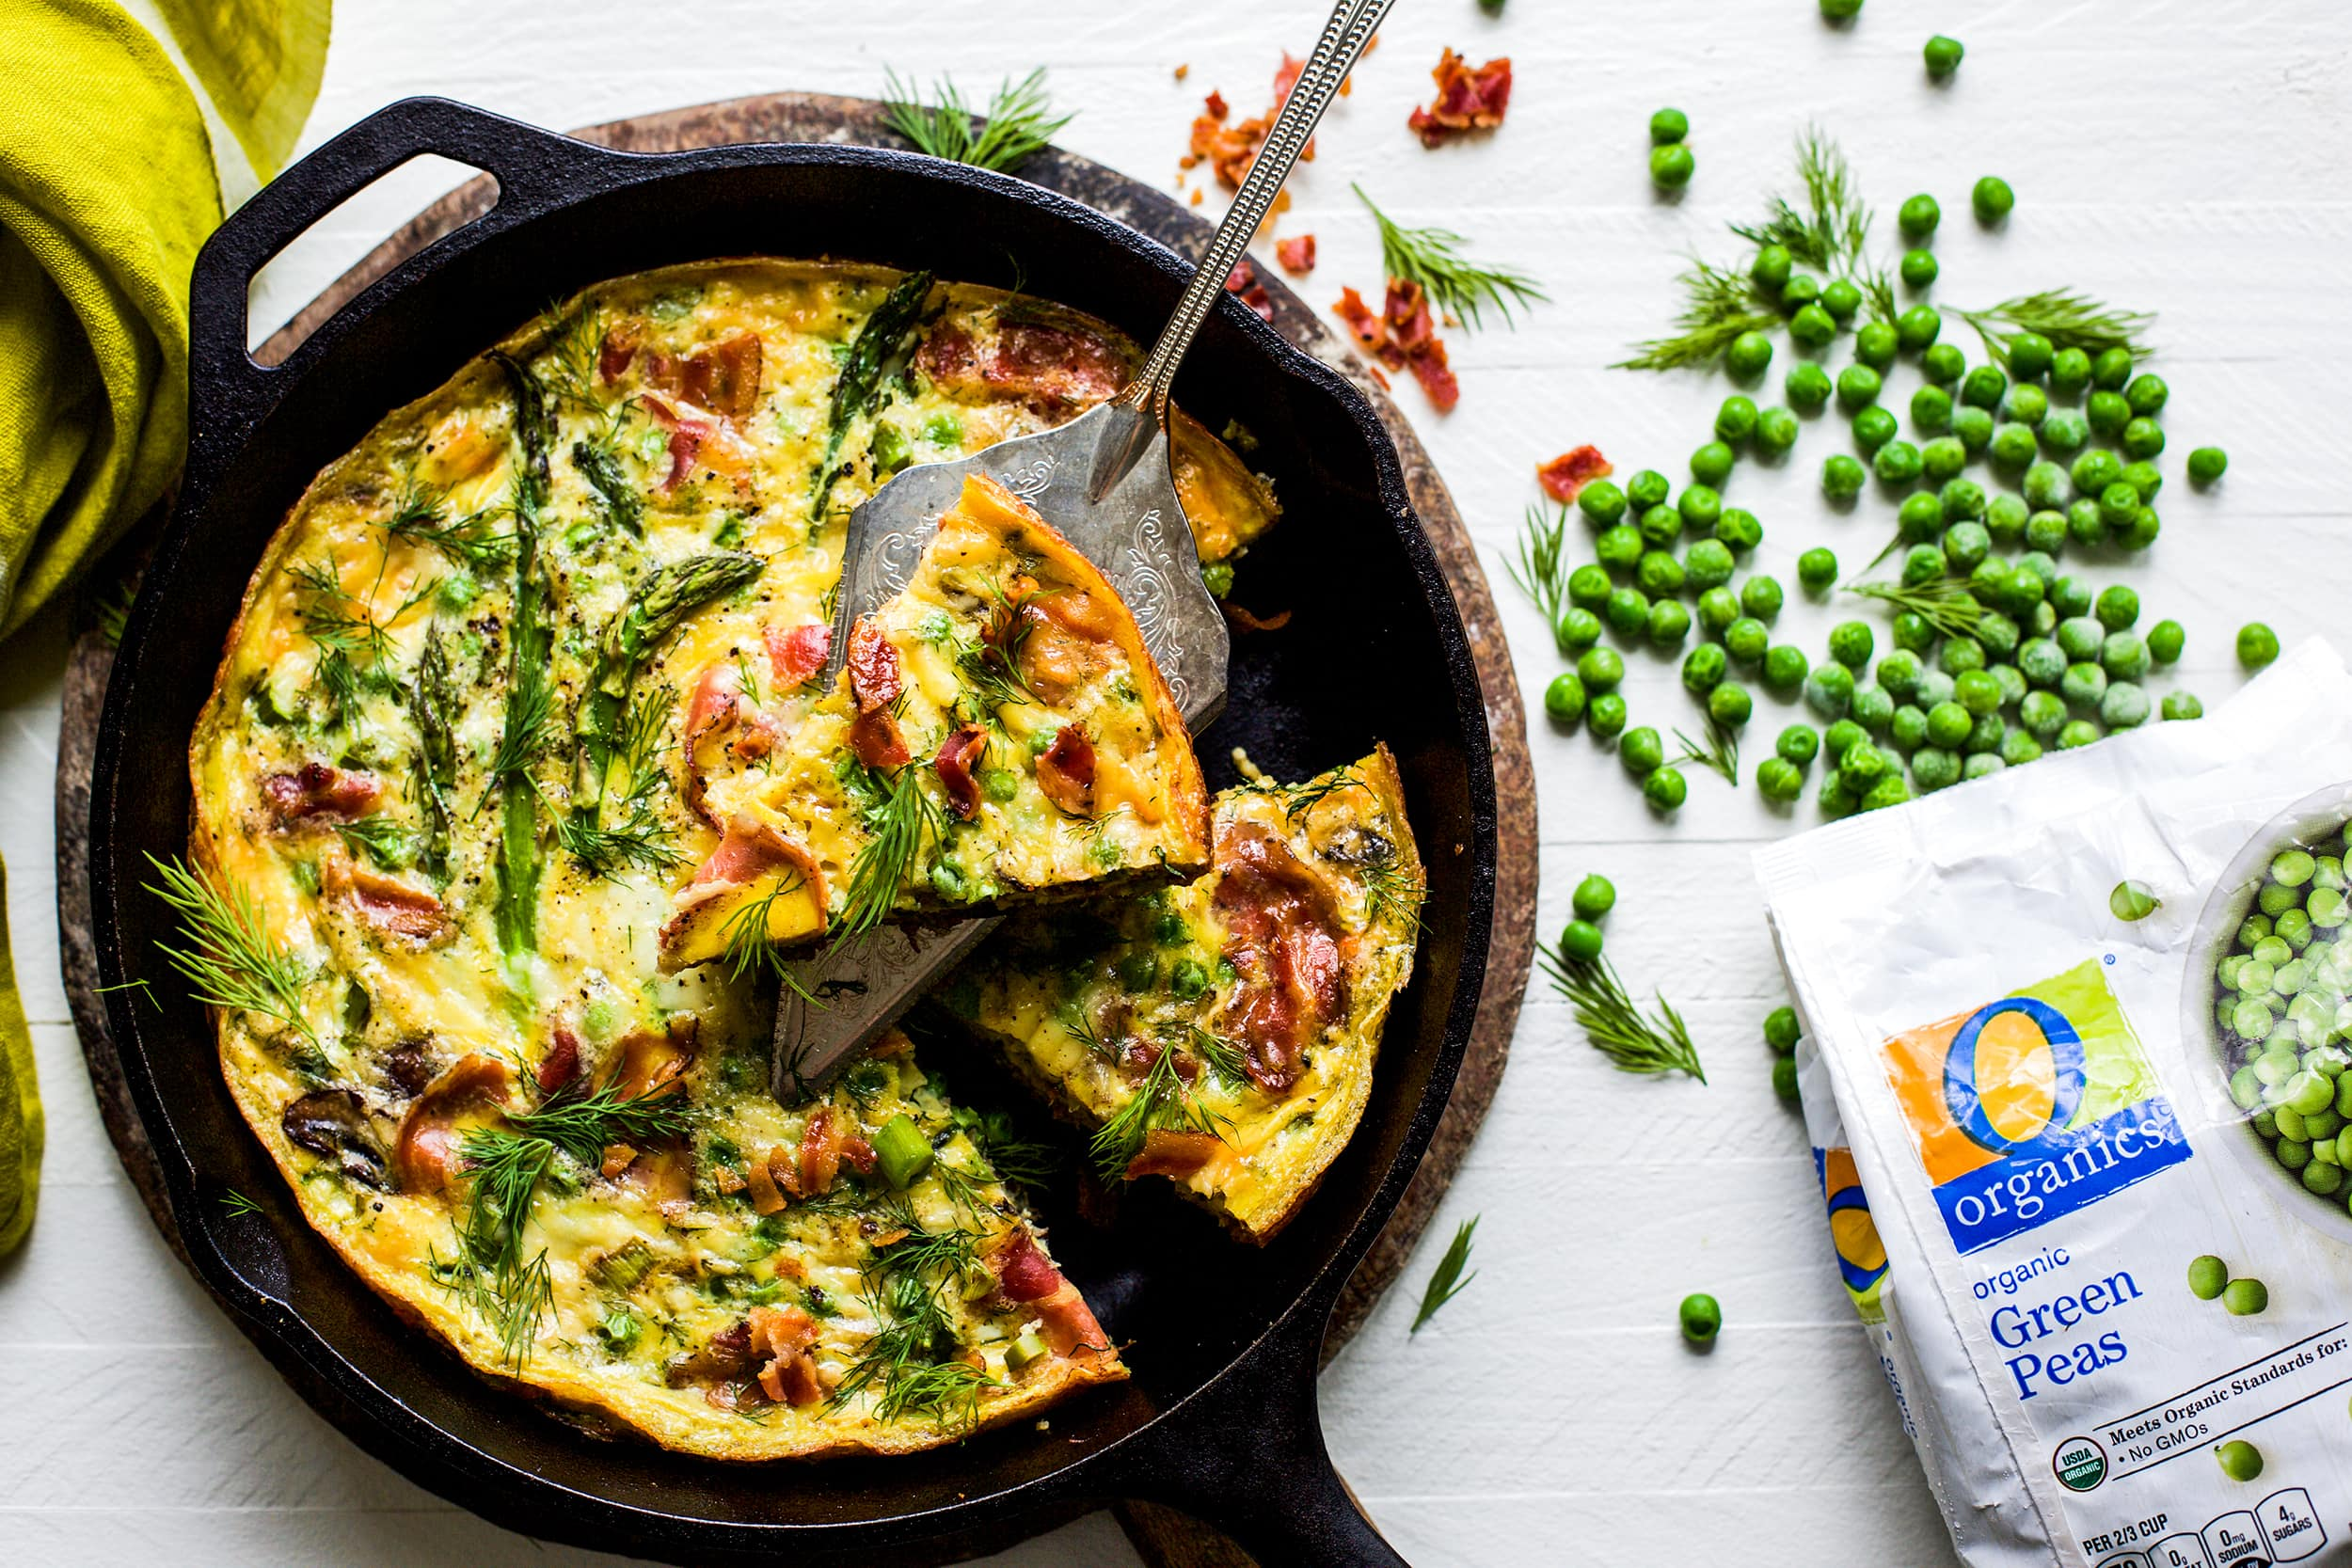 Overhead view of spring frittata in a cast iron skillet on white background